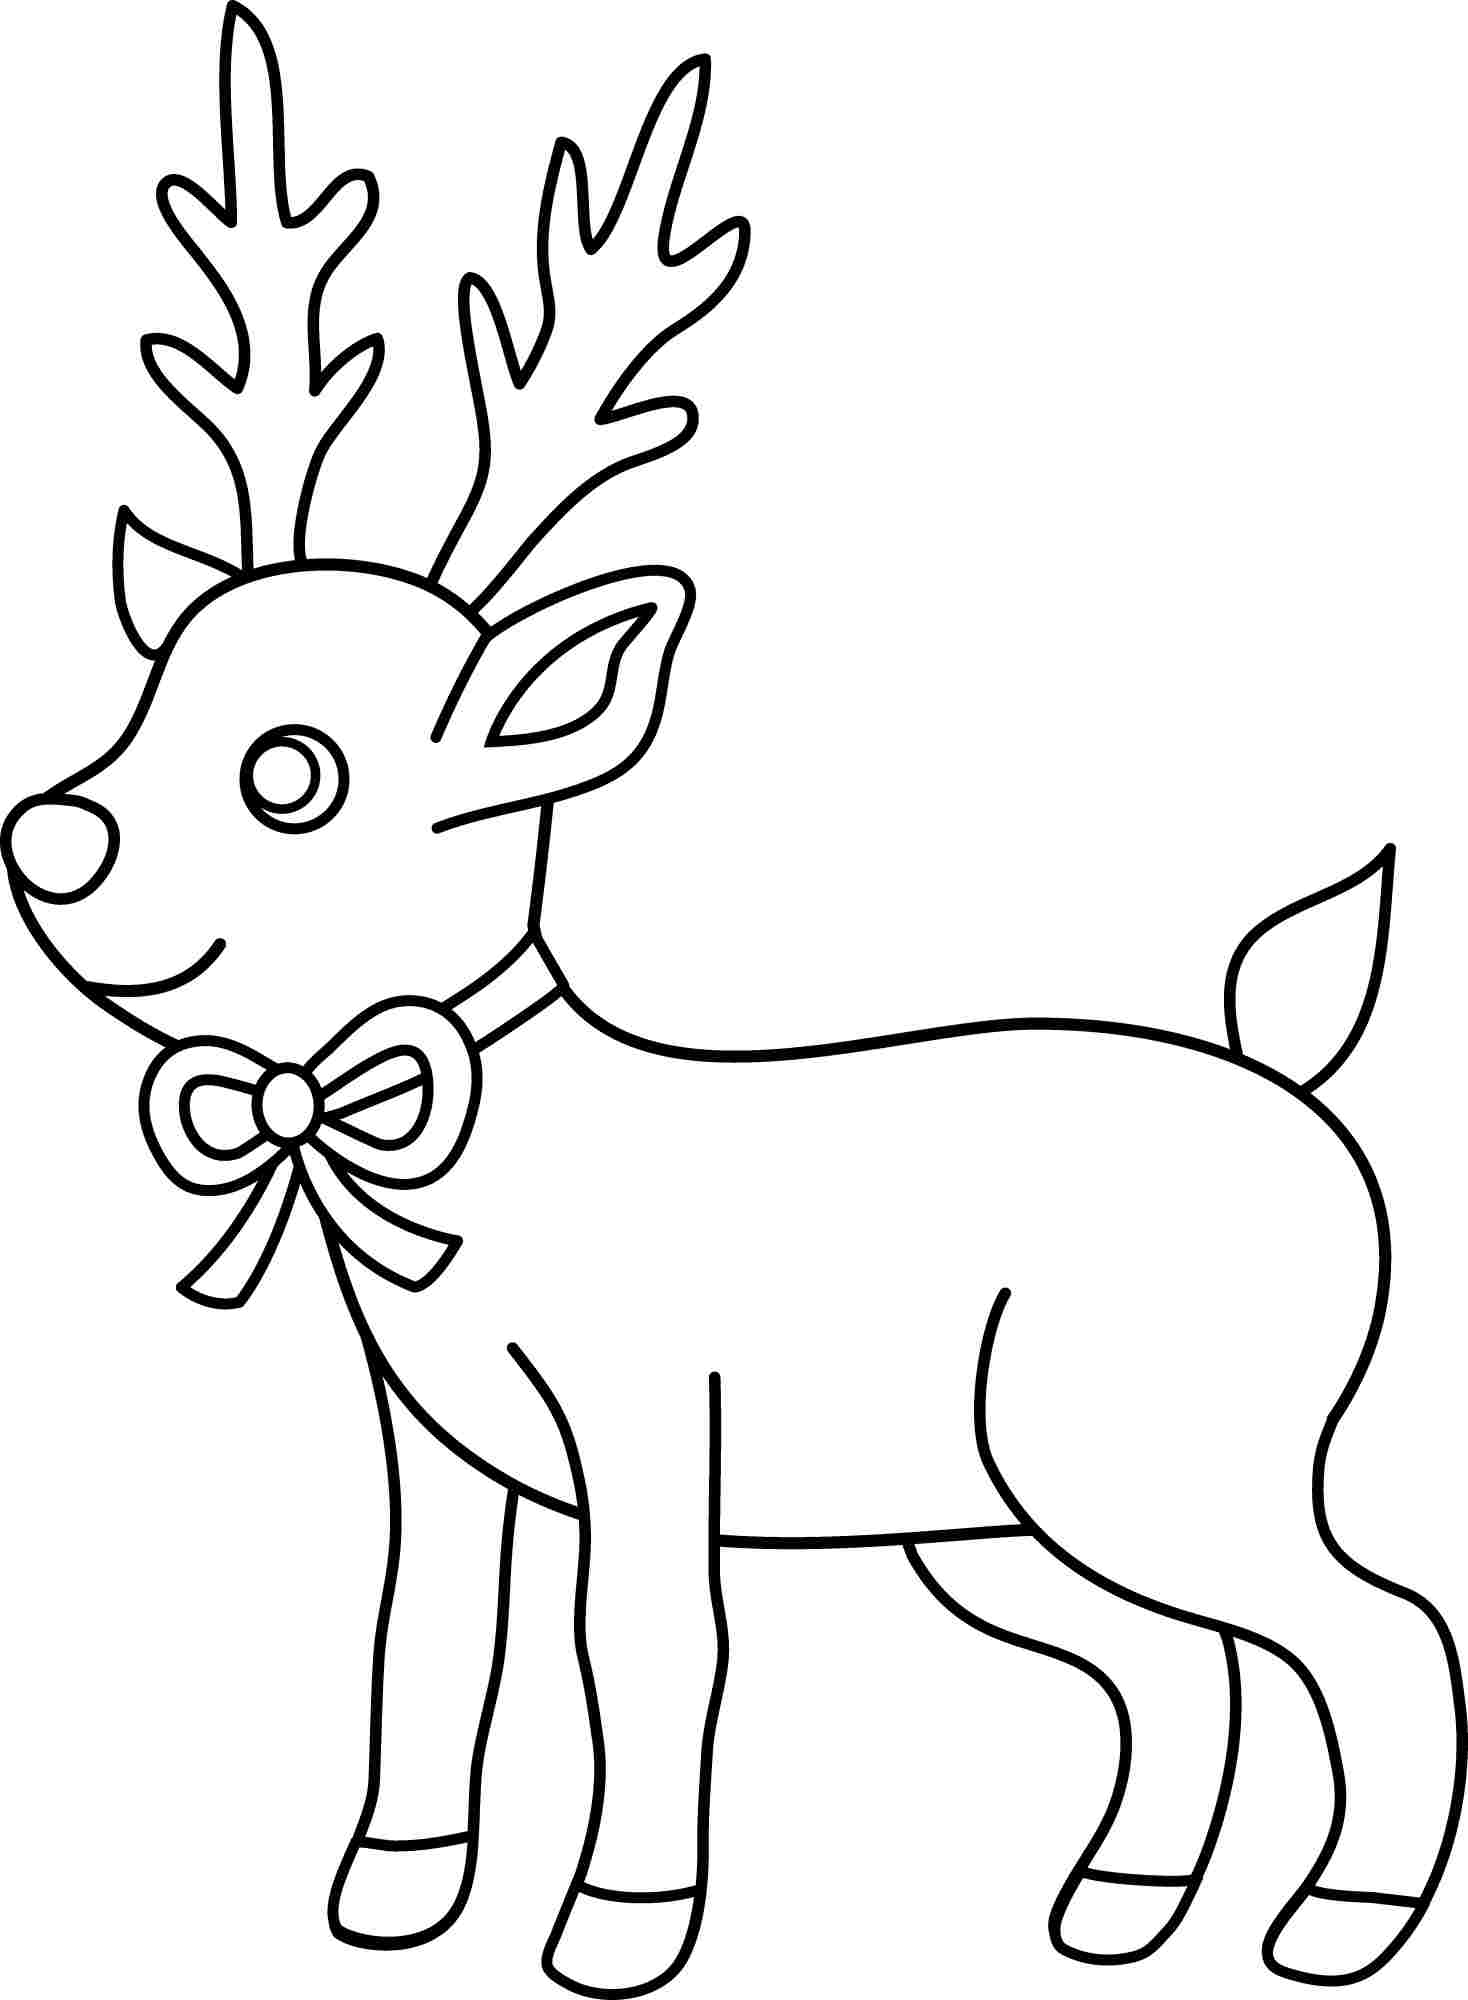 Easy Drawing Of Deer at GetDrawings.com | Free for personal use Easy ...